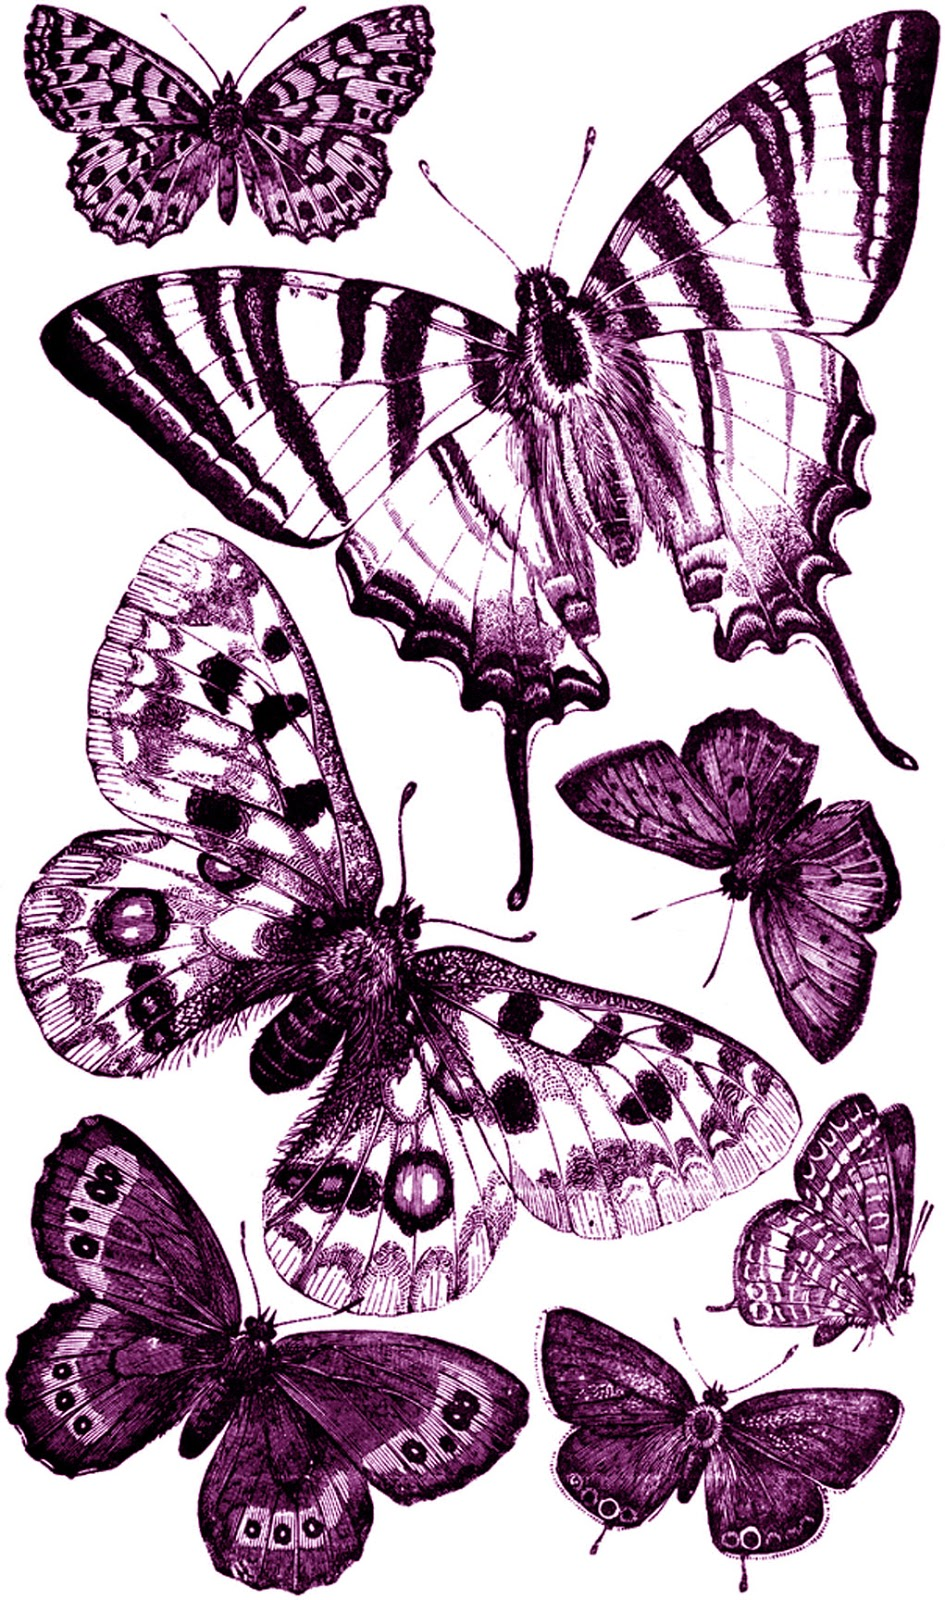 hot pink hi additionally  moreover  besides Amazing Butterfly moreover 0551d5559e1baf1ec1cd1342847dc68a further  also  additionally  as well How To Draw Butterfly together with Butterfly Free Clip Art 01 besides pencil 2Bdrawing 2Bbutterfly 2Bsketches 2Bwallpapers. on birds coloring pages flowers buterflies